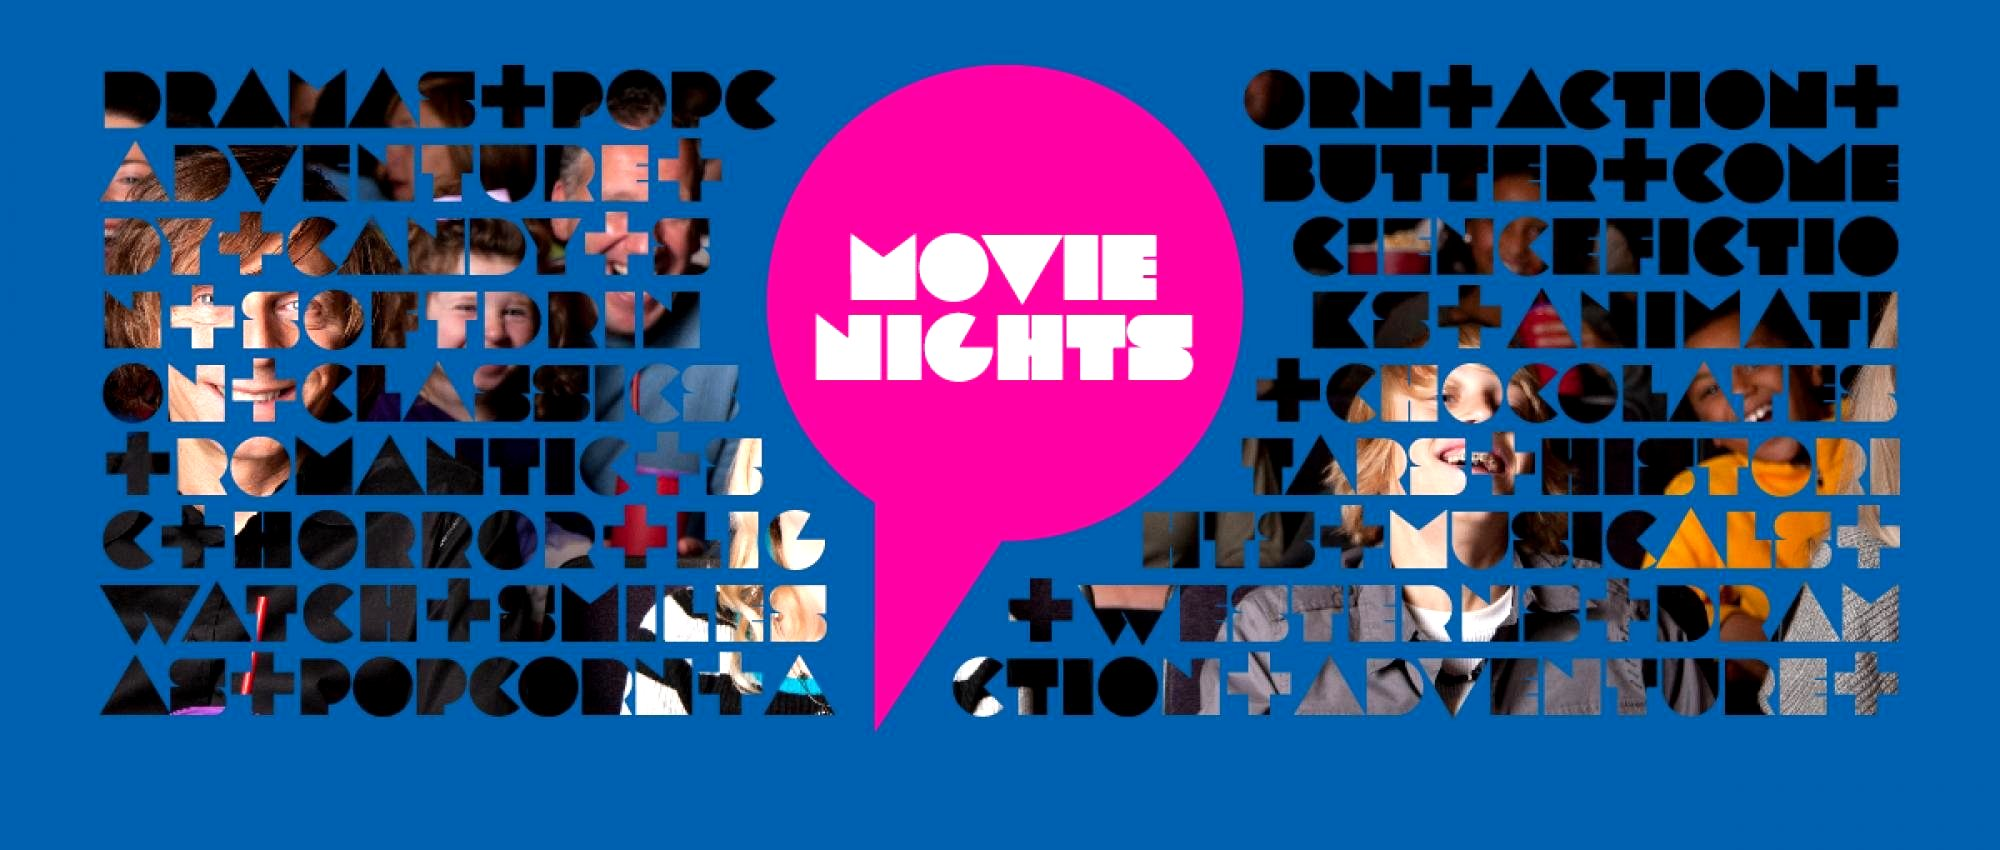 Movie Nights 2016 Google image from https://culture.mississauga.ca/event/celebration-square/movie-nights